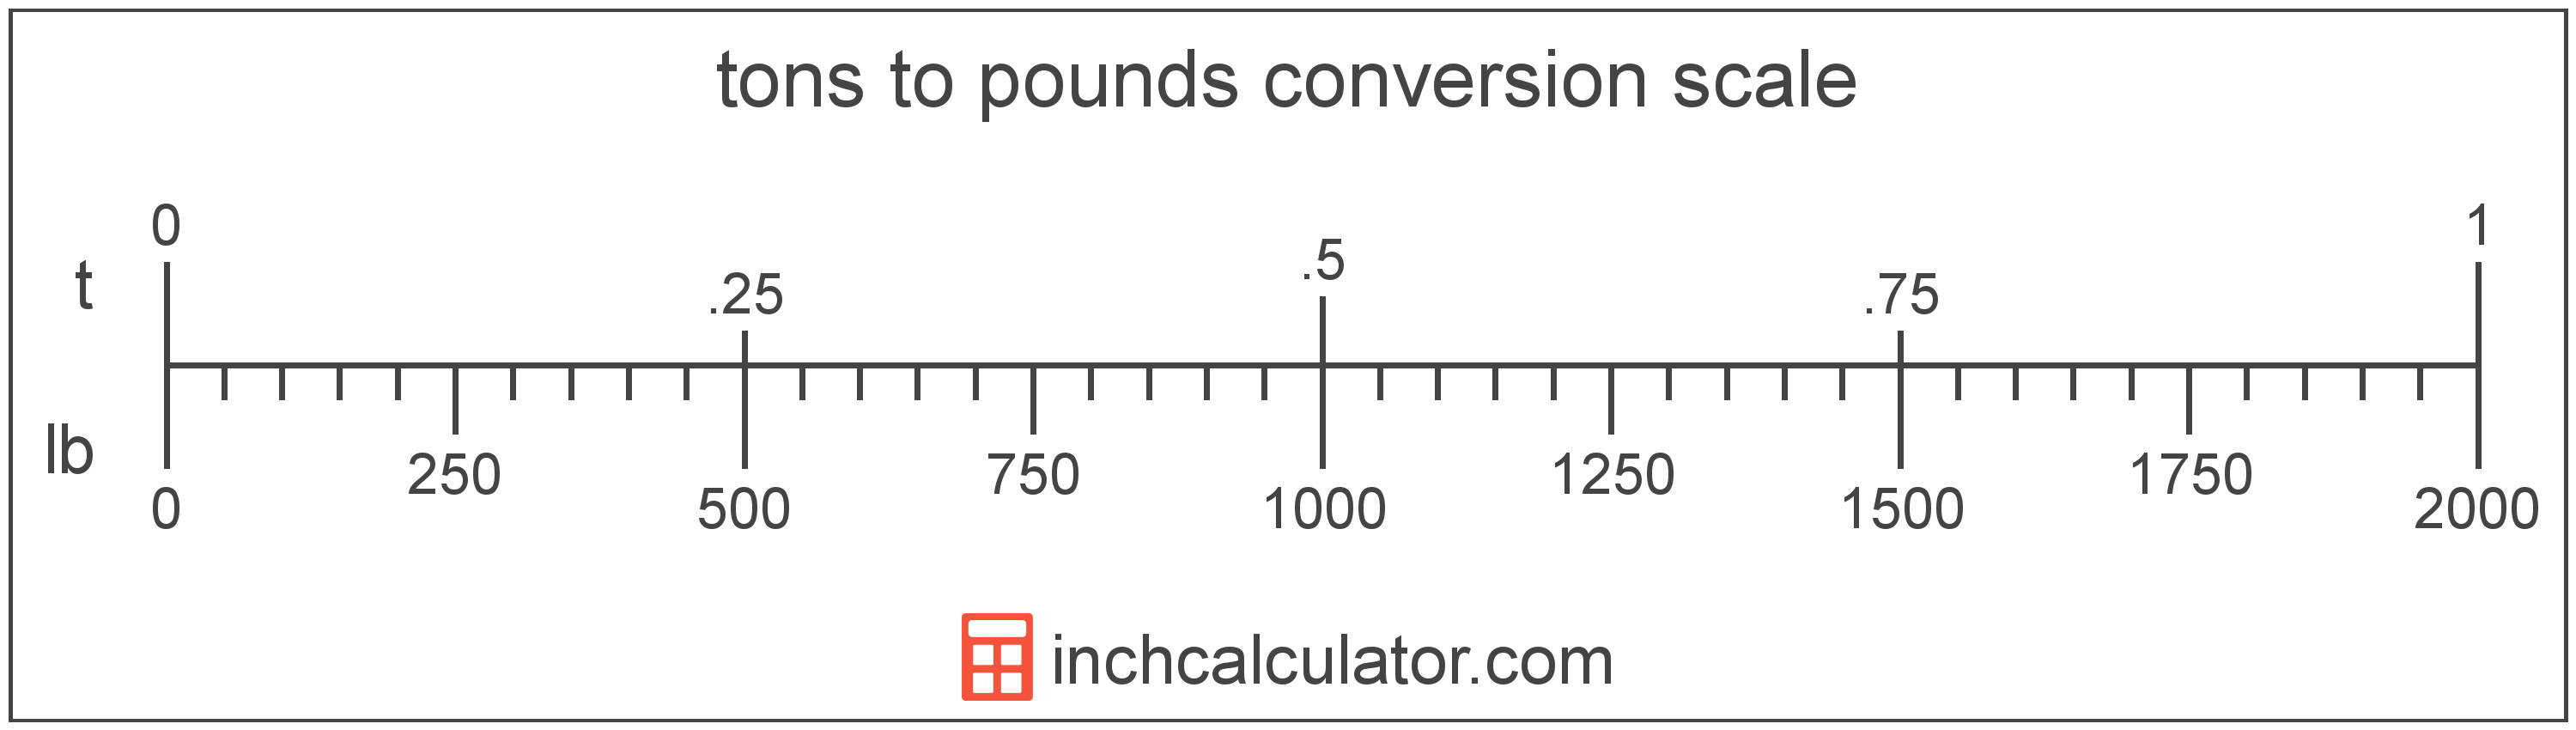 Convert Pounds To Tons Lb T Inch Calculator